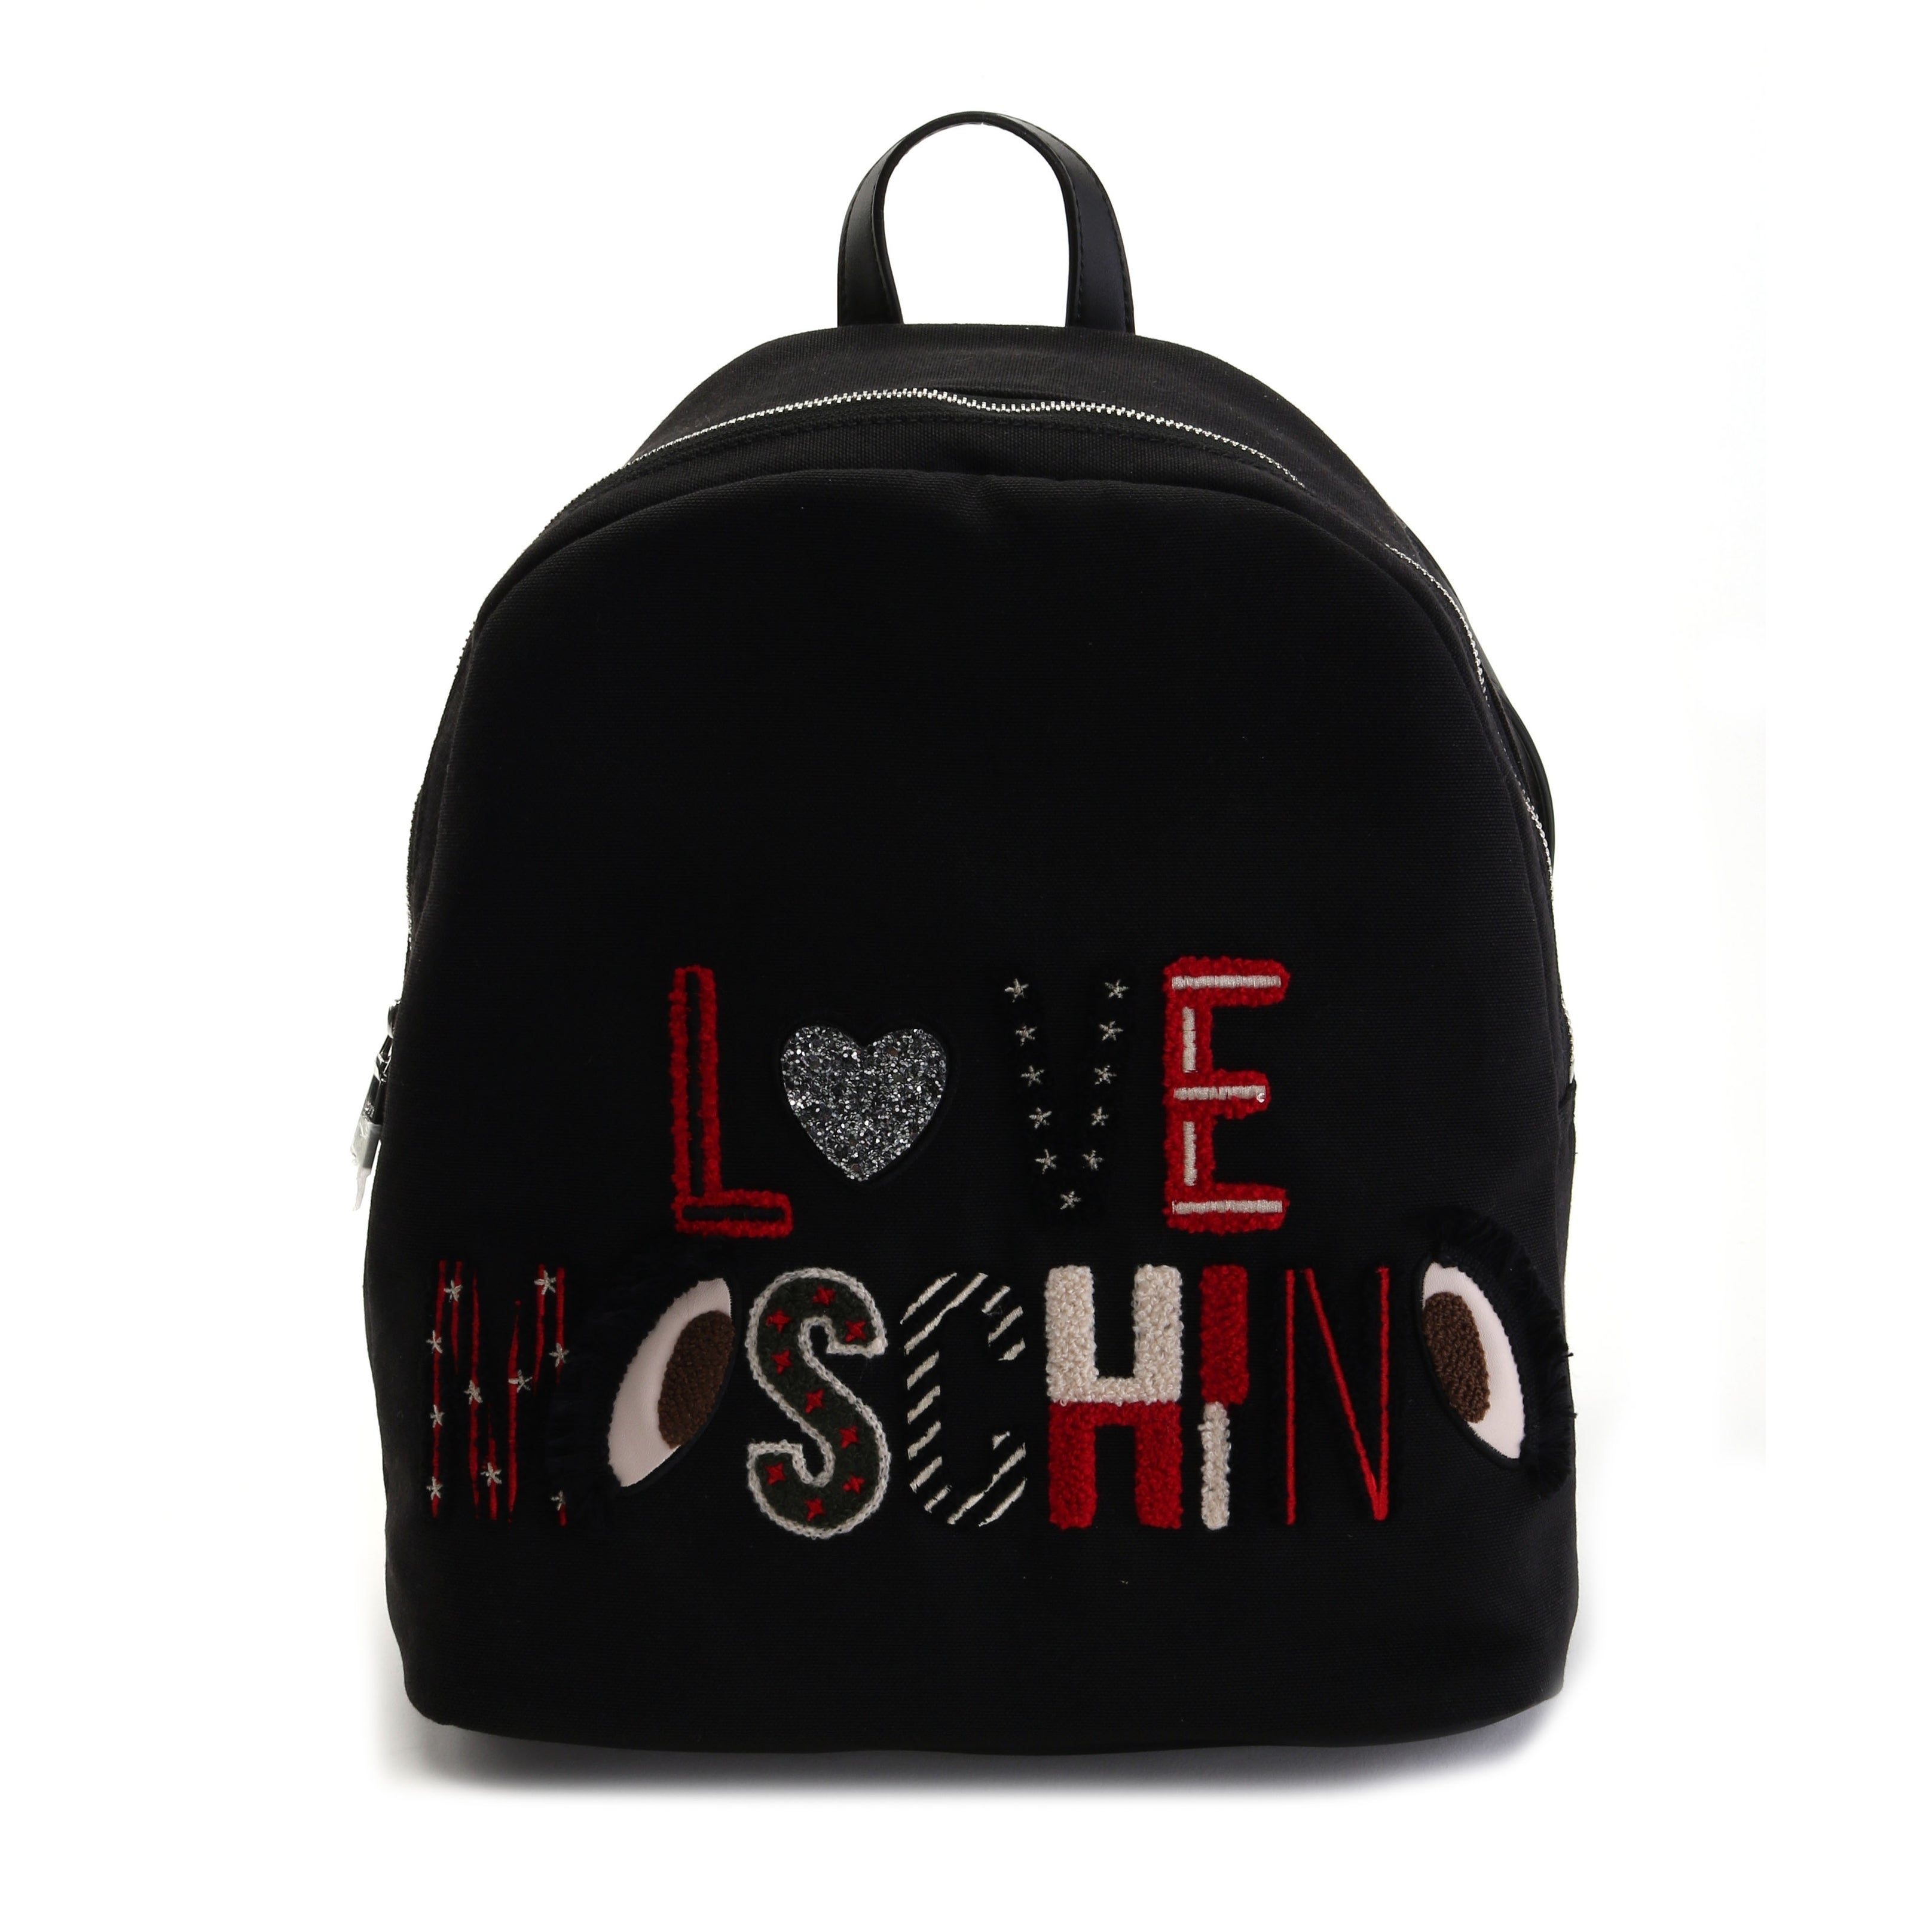 Love Moschino Women's Fashion-Backpacks - On Sale - Overstock - 28416704